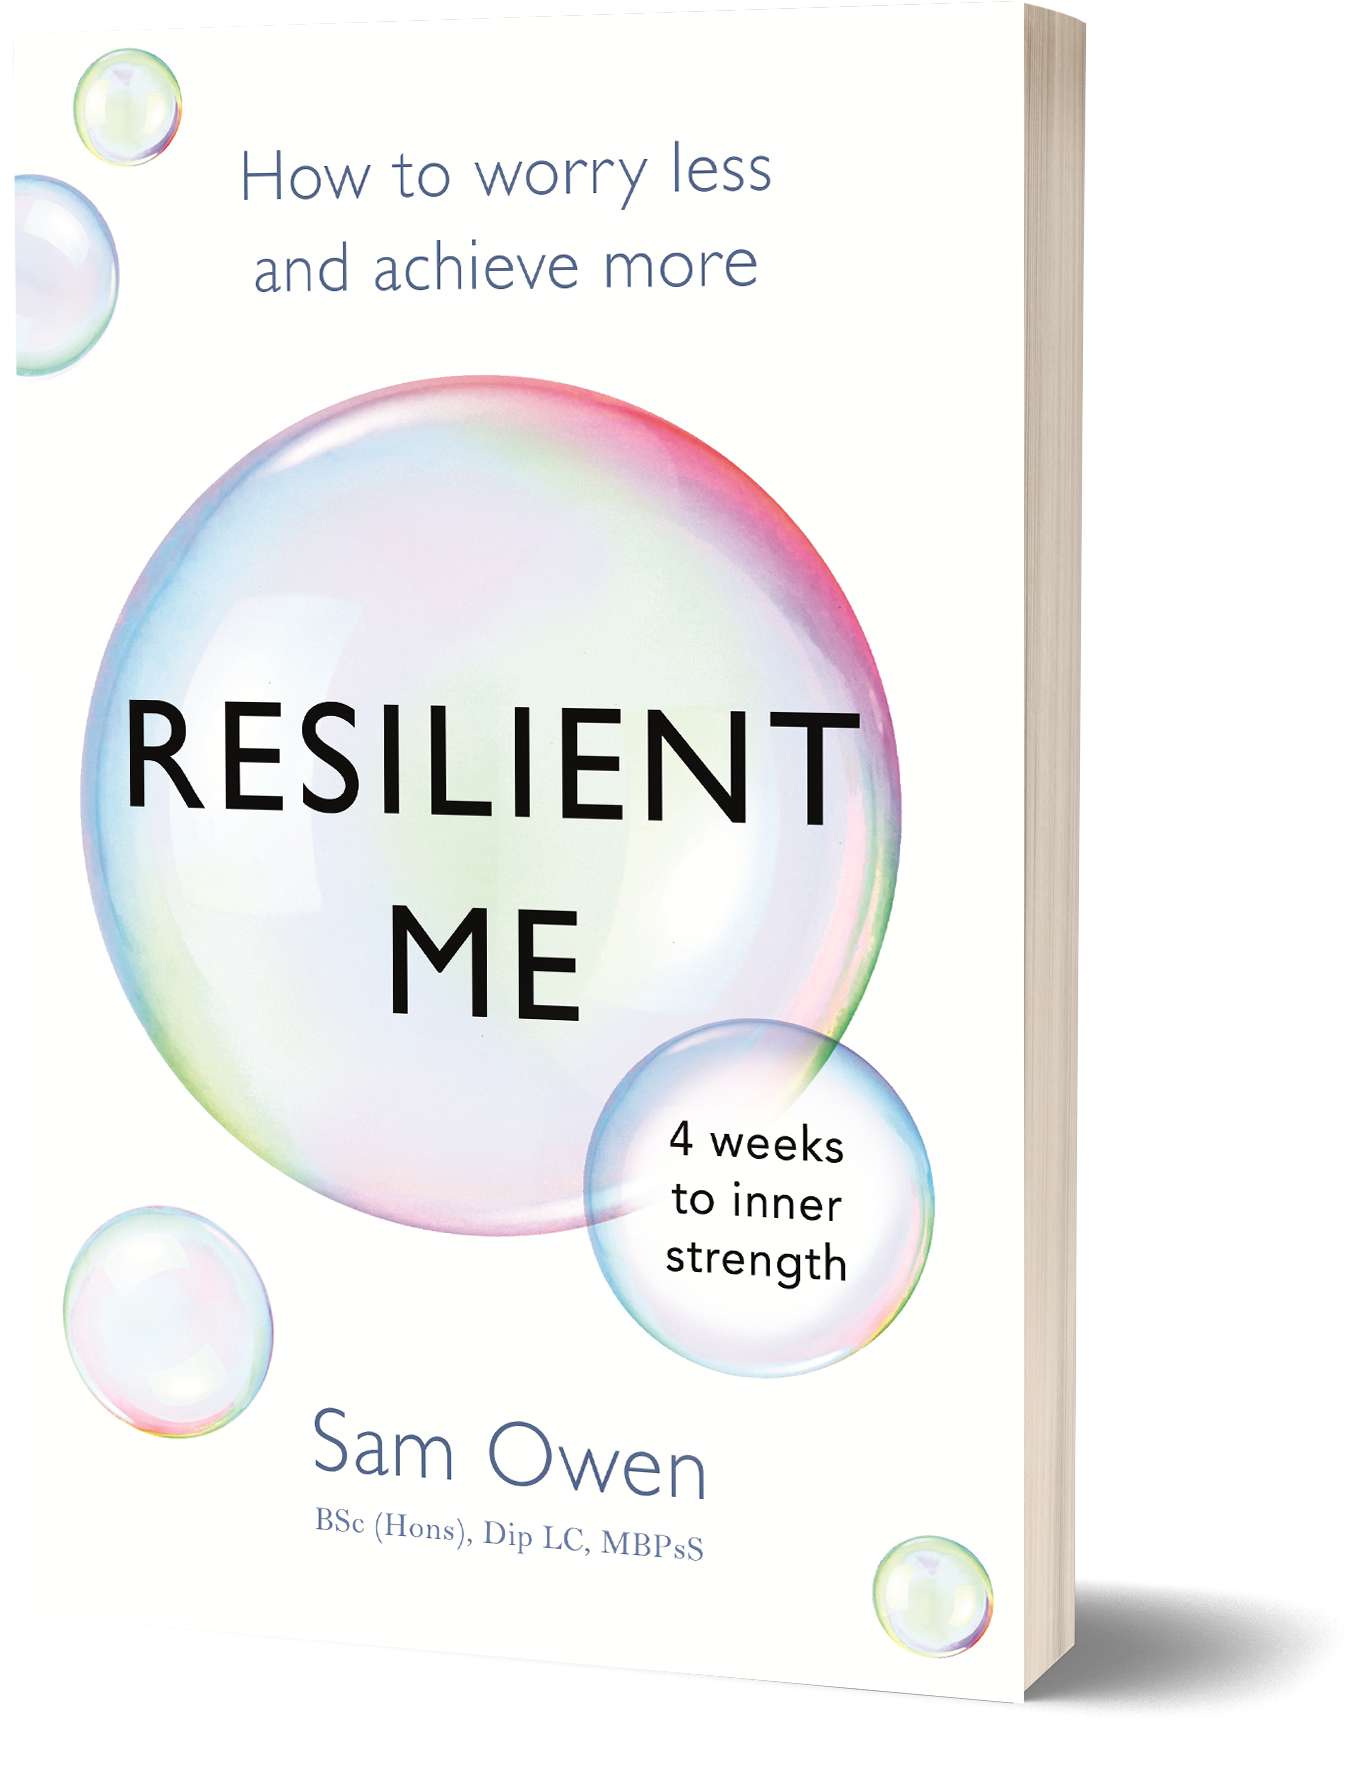 Resilient Me book by Sam Owen